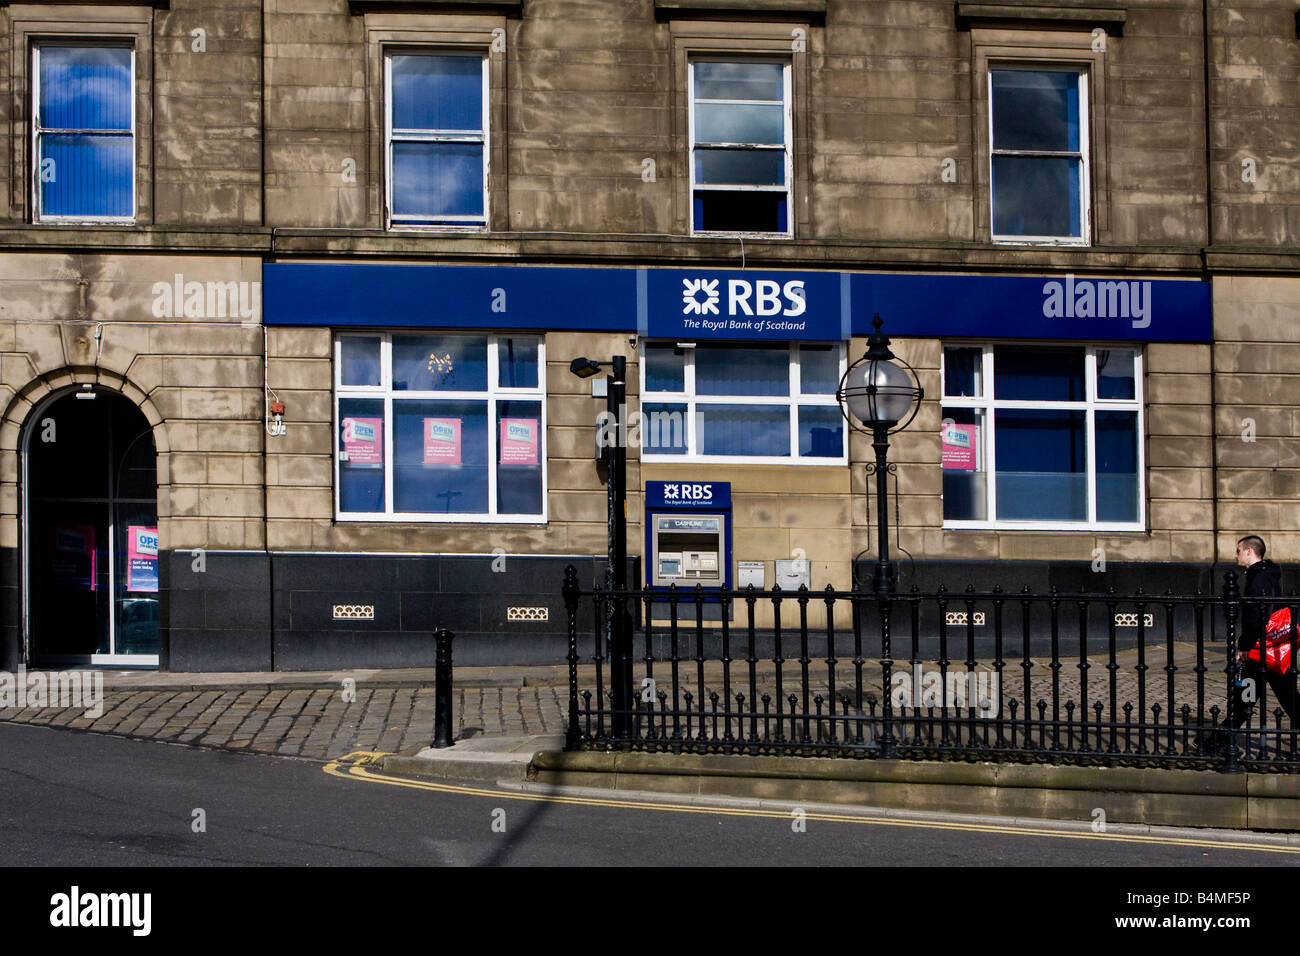 pestel analysis of royal bank of scotland The royal bank of scotland group plc (or rbs) is the holding company of one of the world's largest banking and financial services groups the group operates from the uk, us.